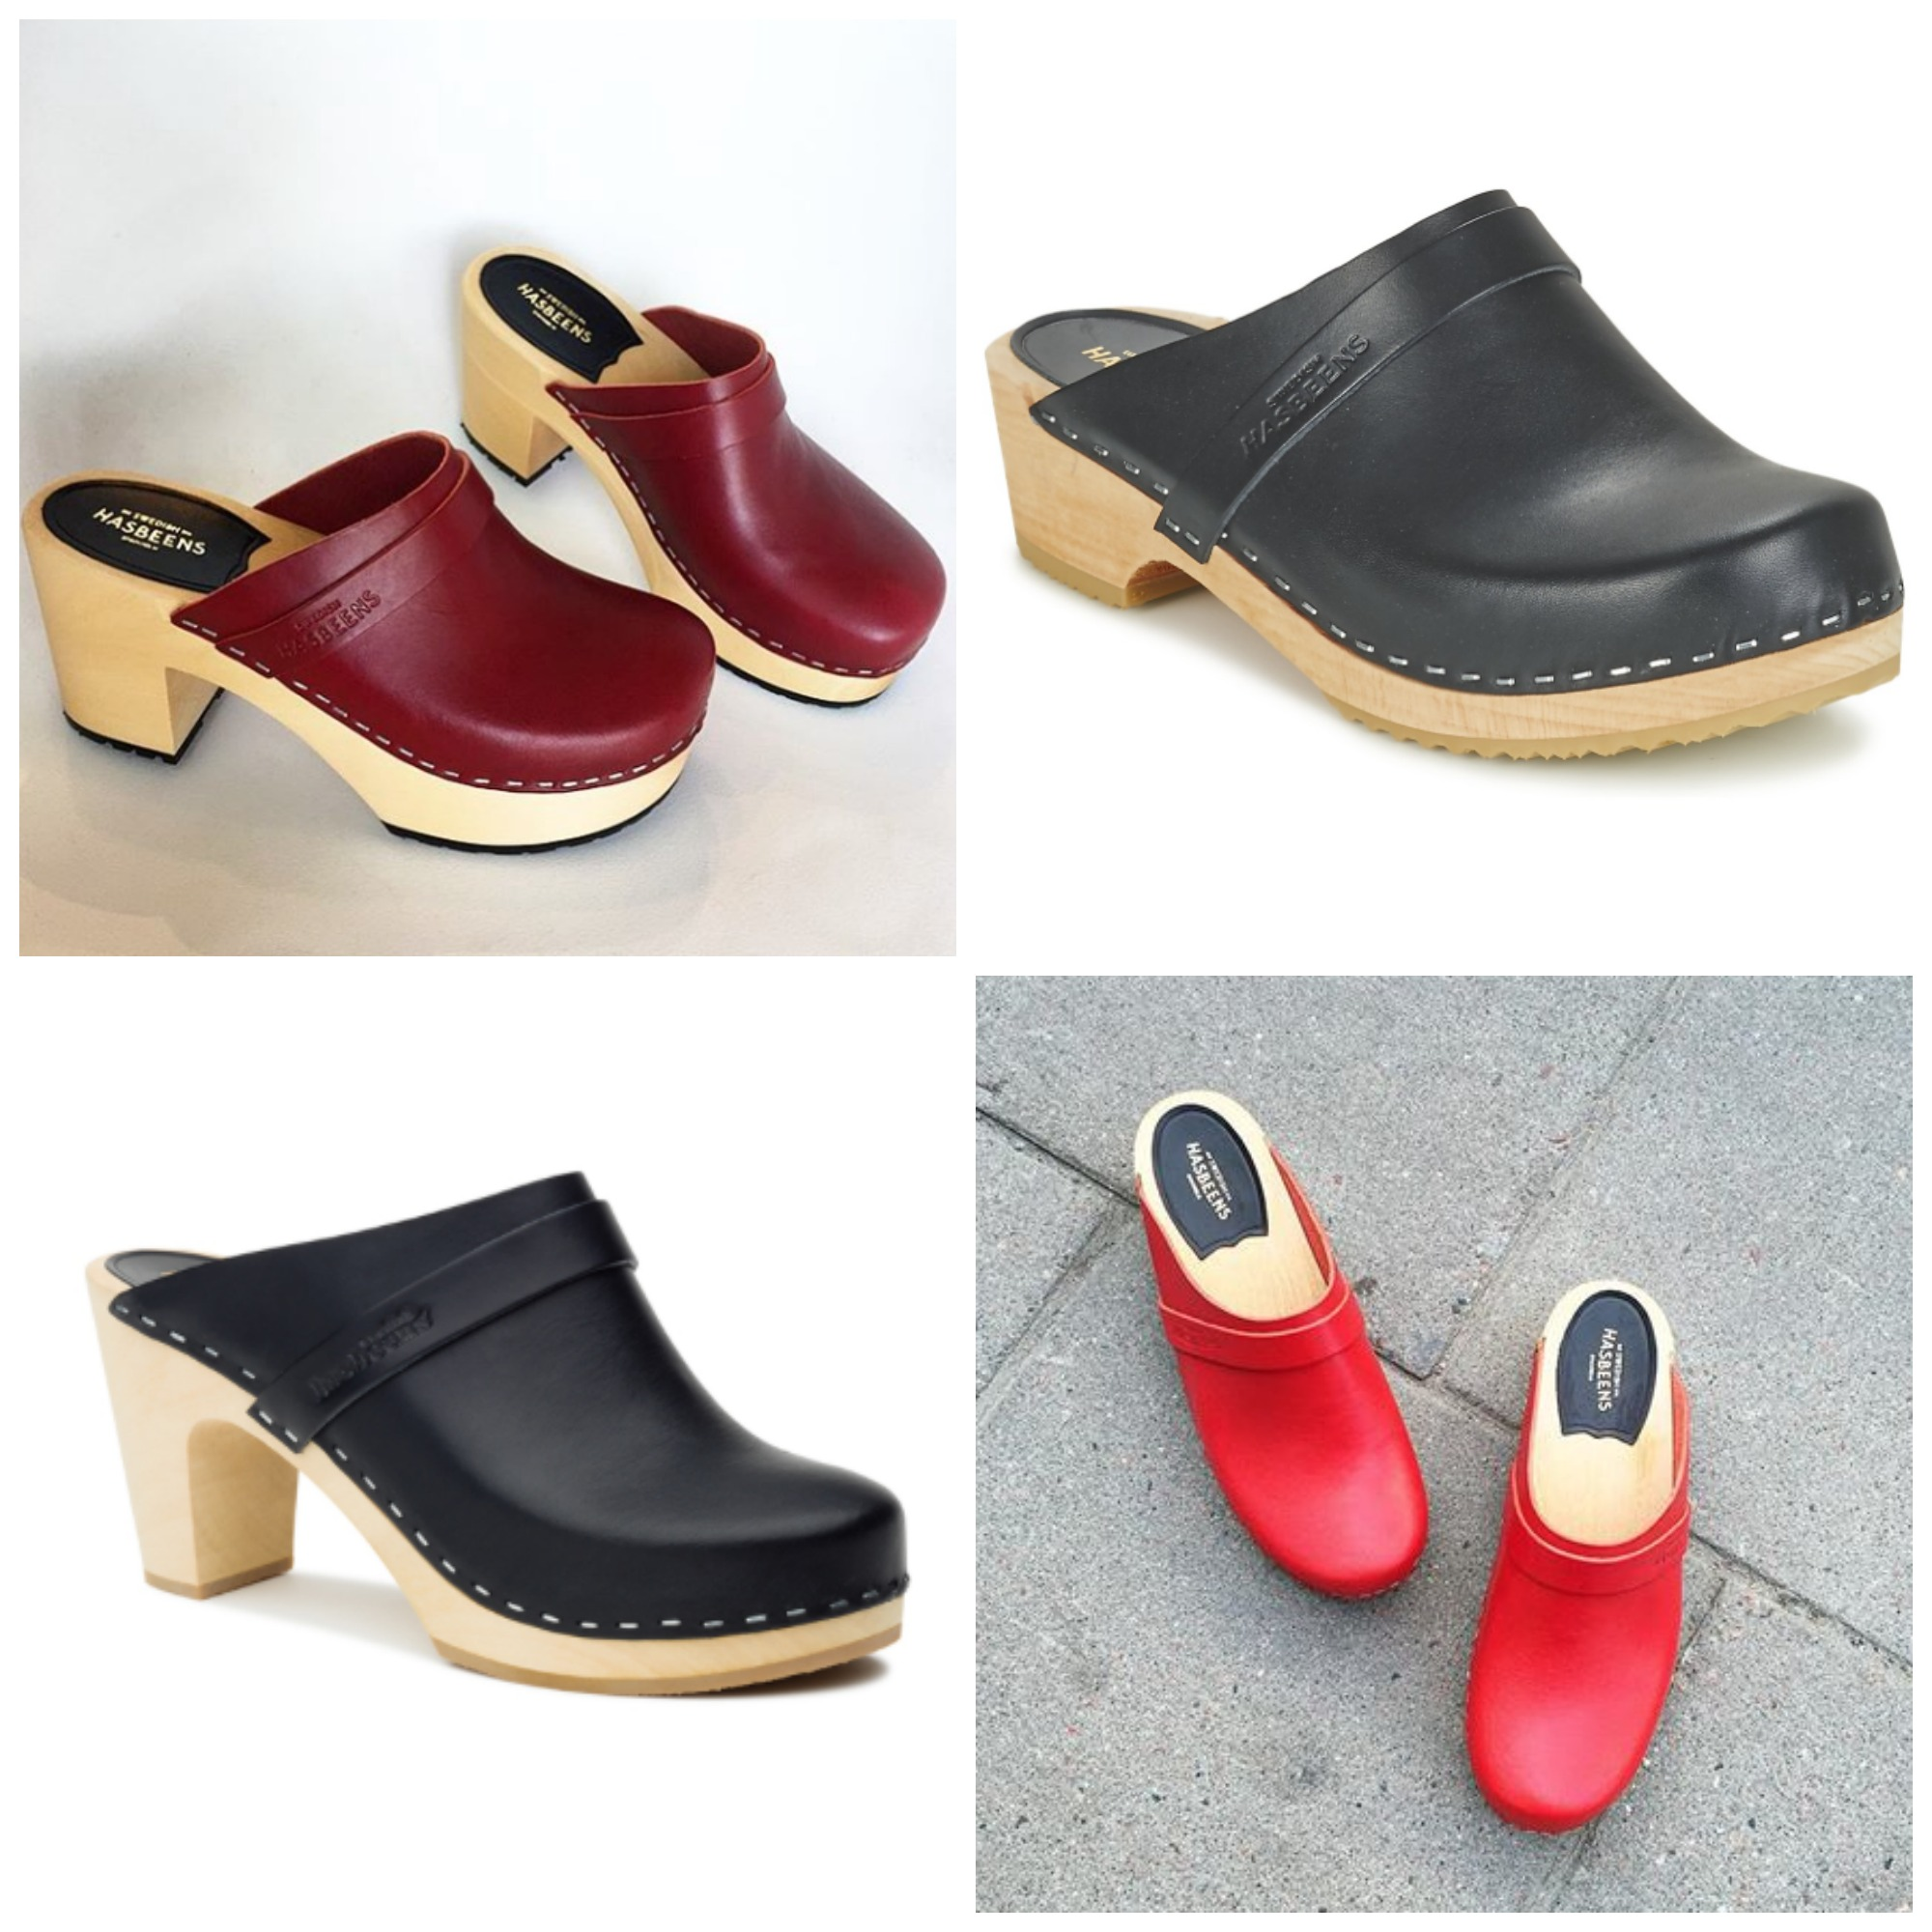 Top left, going clockwise: Louise in red , Husband in black, Classic Slip In, and Husband in red